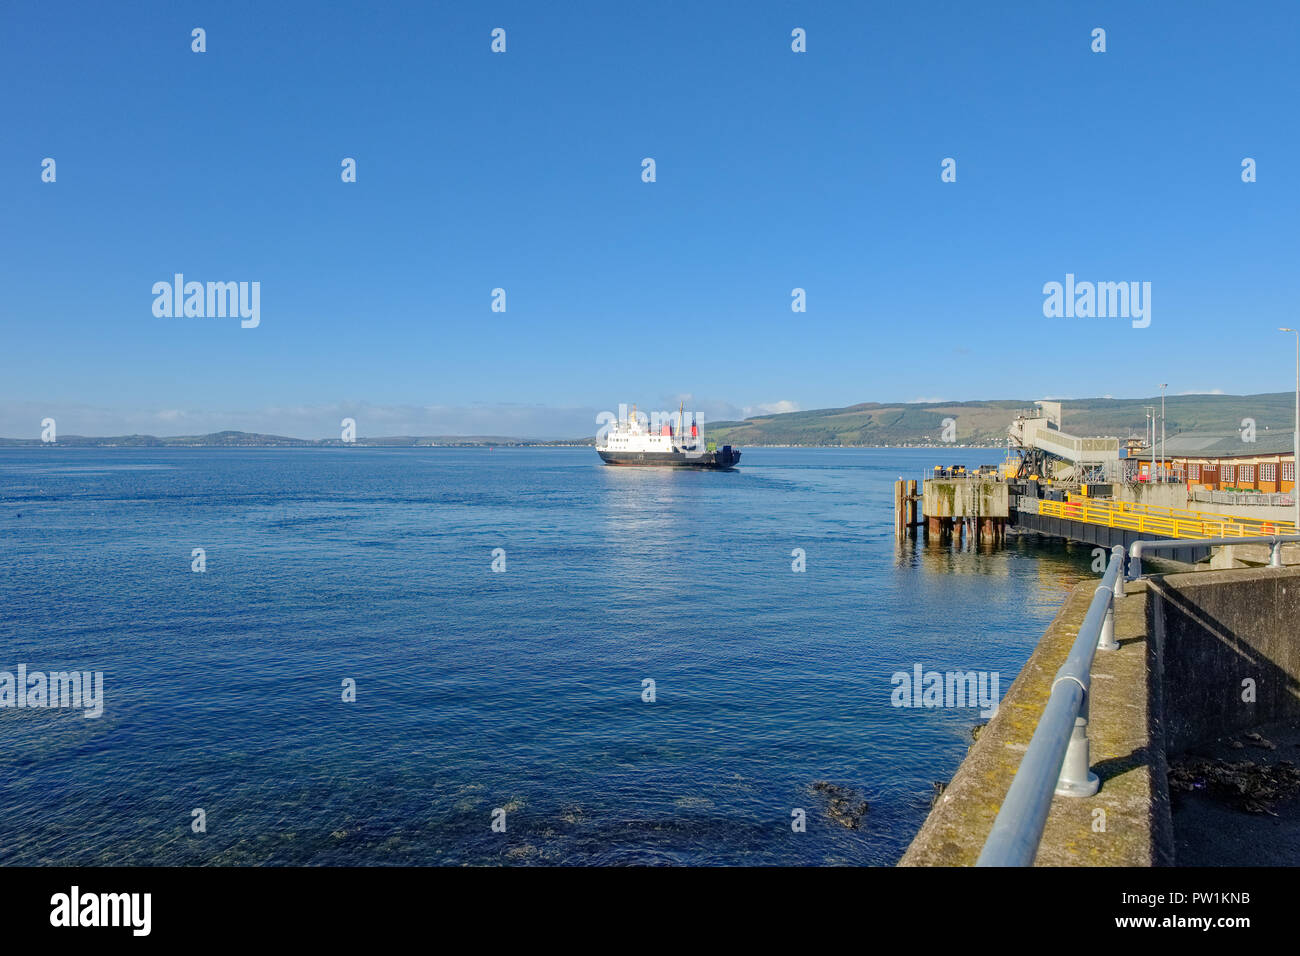 Car Ferry on the River Clyde Leaving Wemyss Bay Pier Scotland - Stock Image